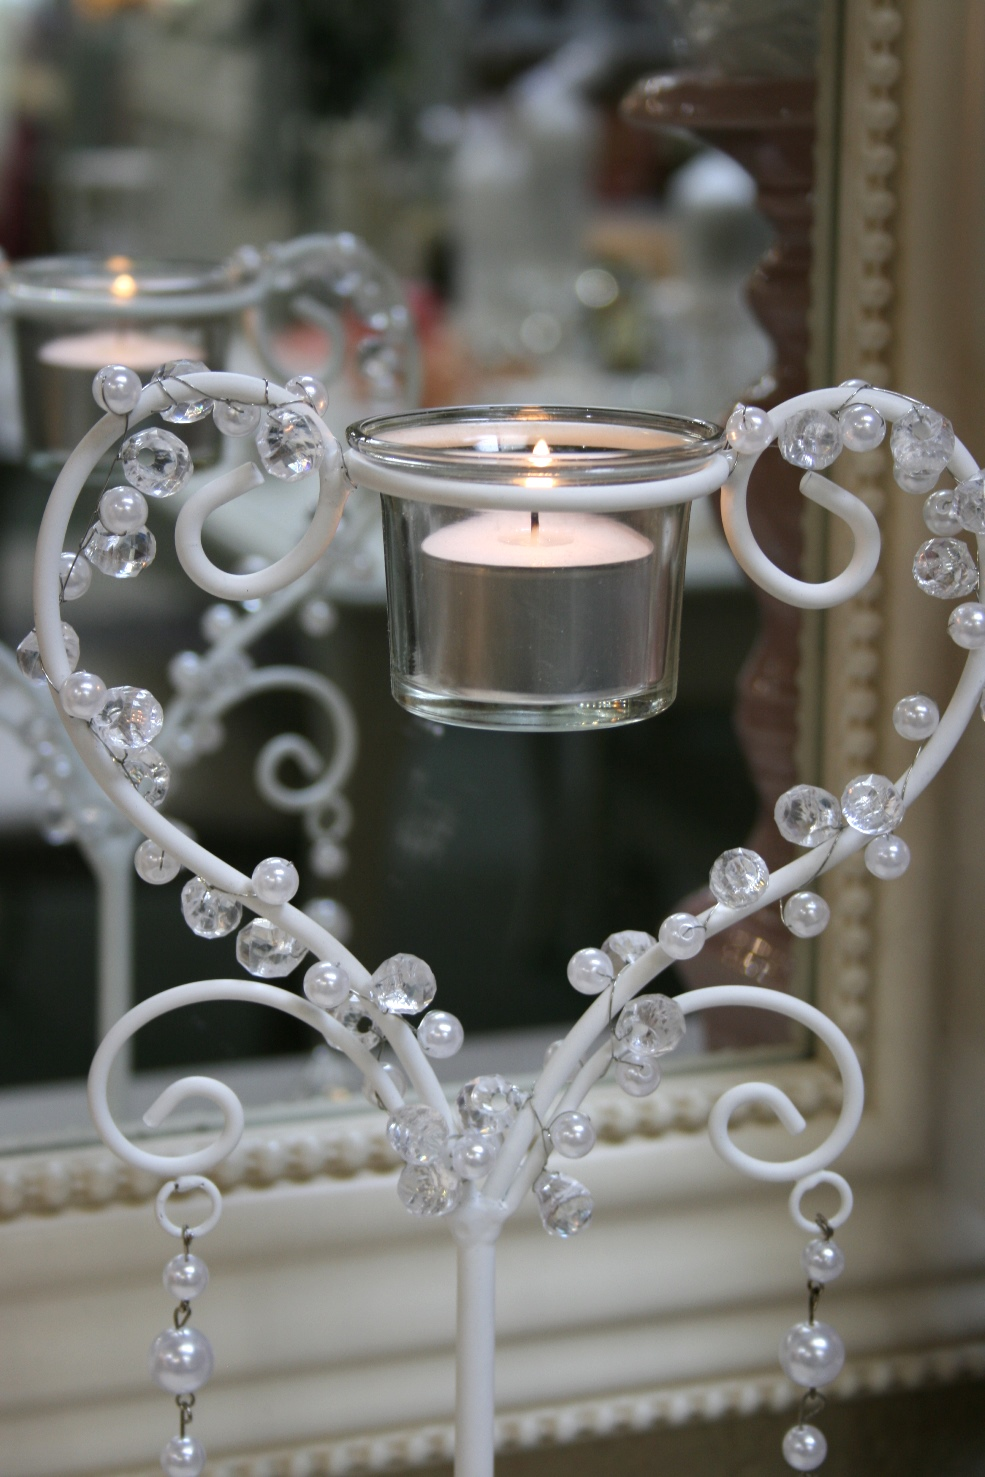 Heart Tea Light Holder - €11.00